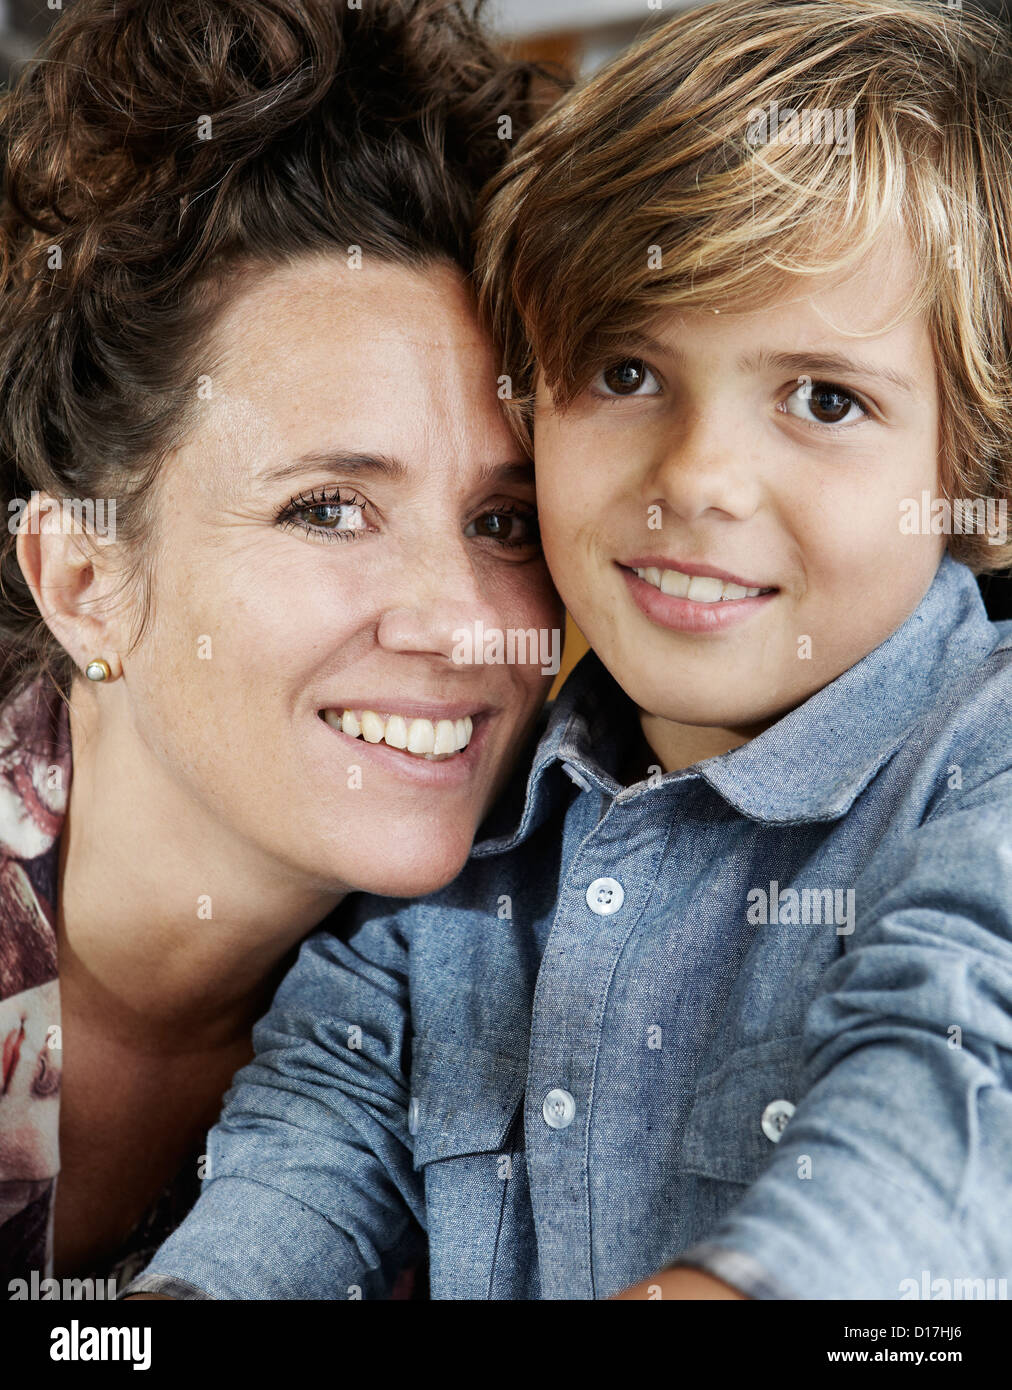 Close up of smiling mother and son - Stock Image